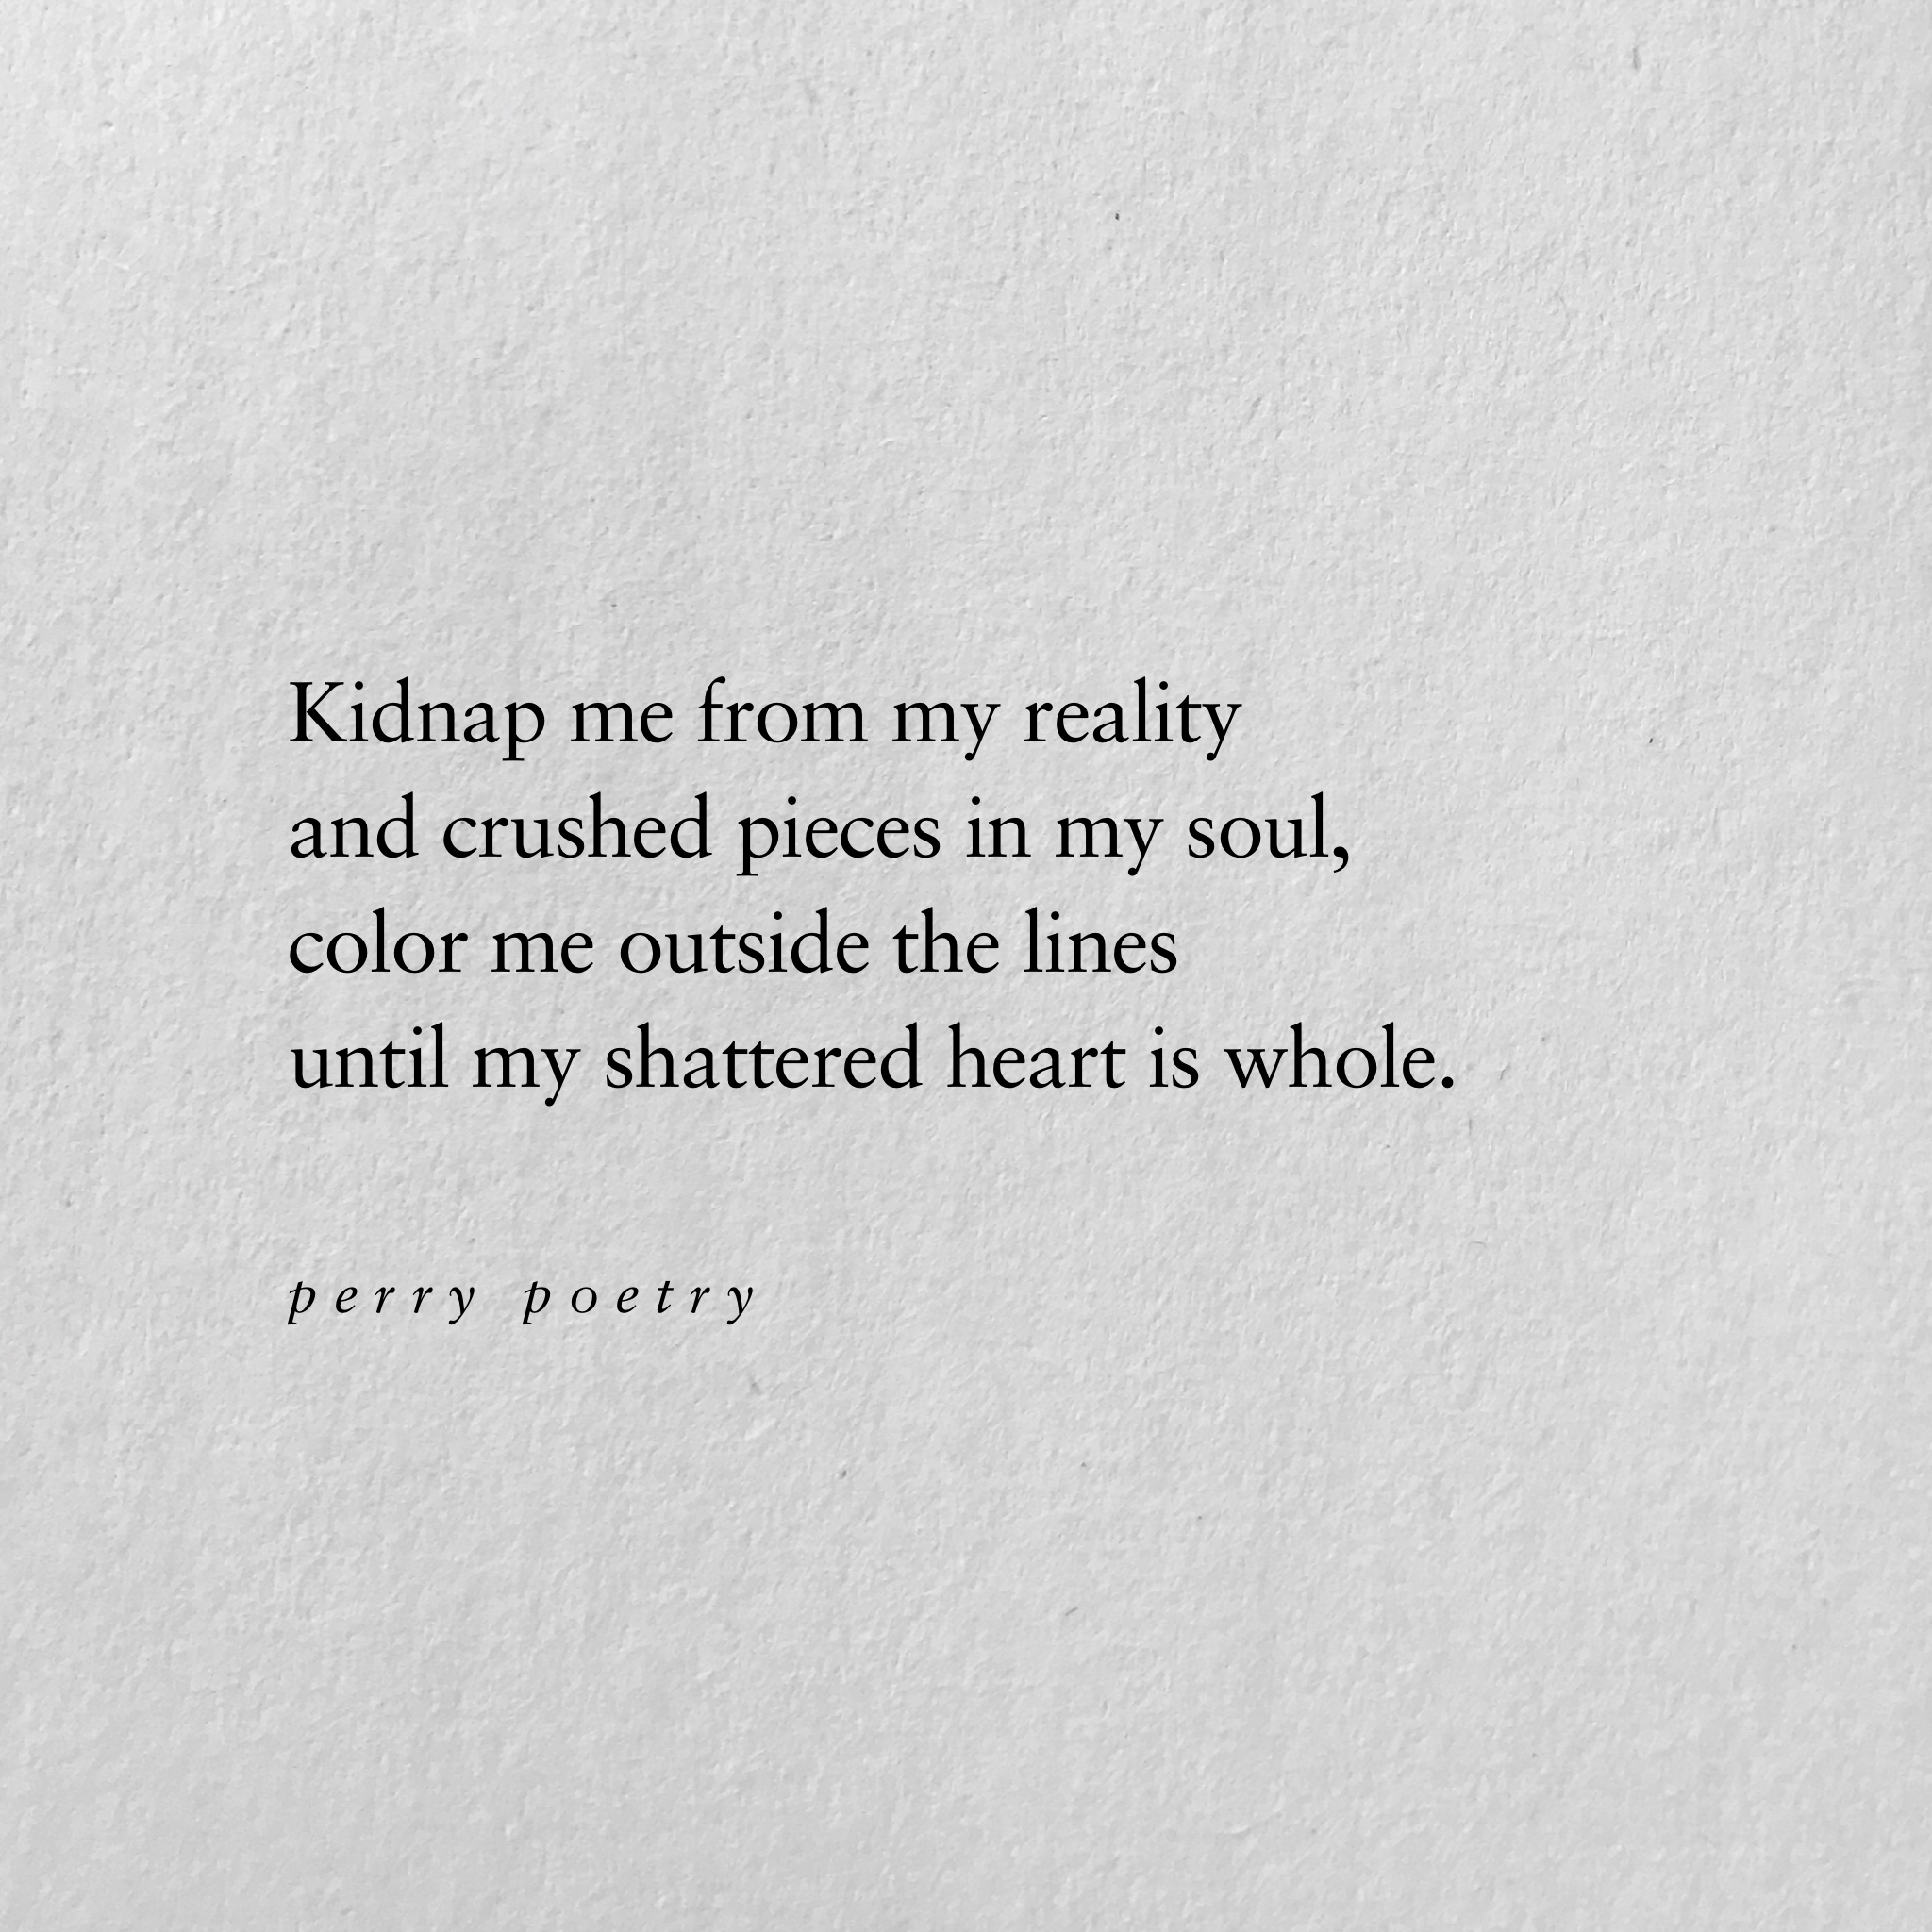 """Kidnap me from my reality and crushed pieces in my soul, color me outside the lines, until my shattered heart is whole."""